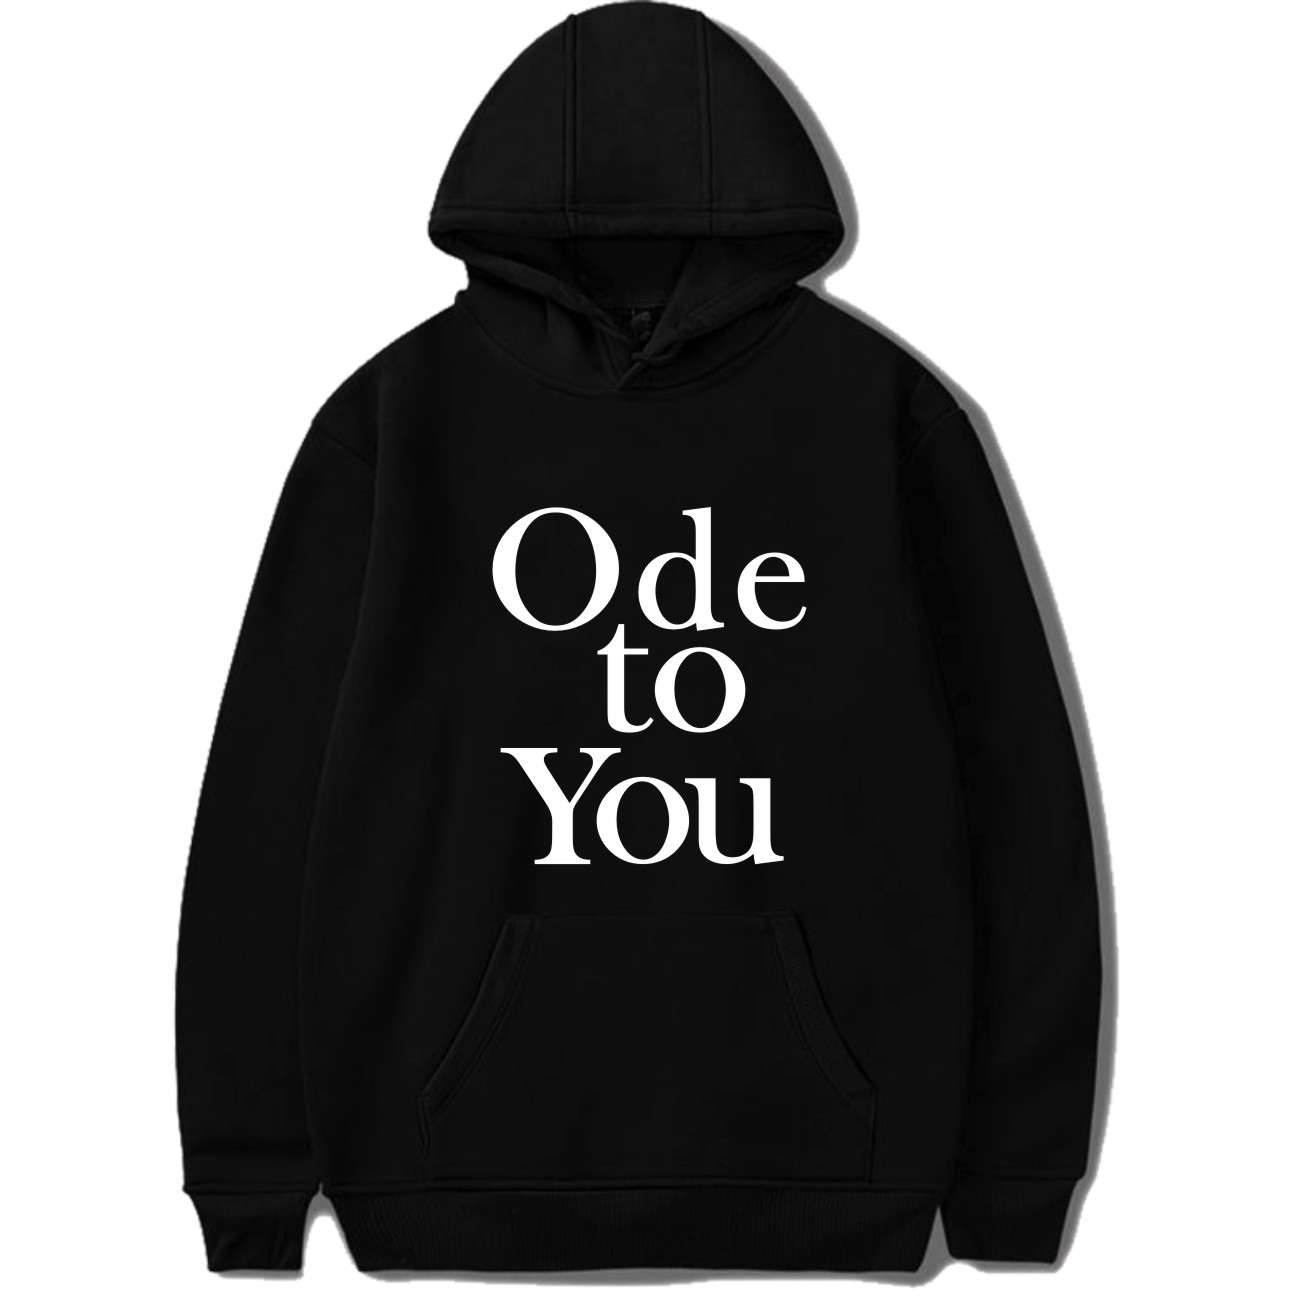 New Kpop Seventeen 17 Concert ODE TO YOU Same Korean Style Women Men Cotton Pullovers Hoodies Sweatshirt Tops Kpop Streetwear